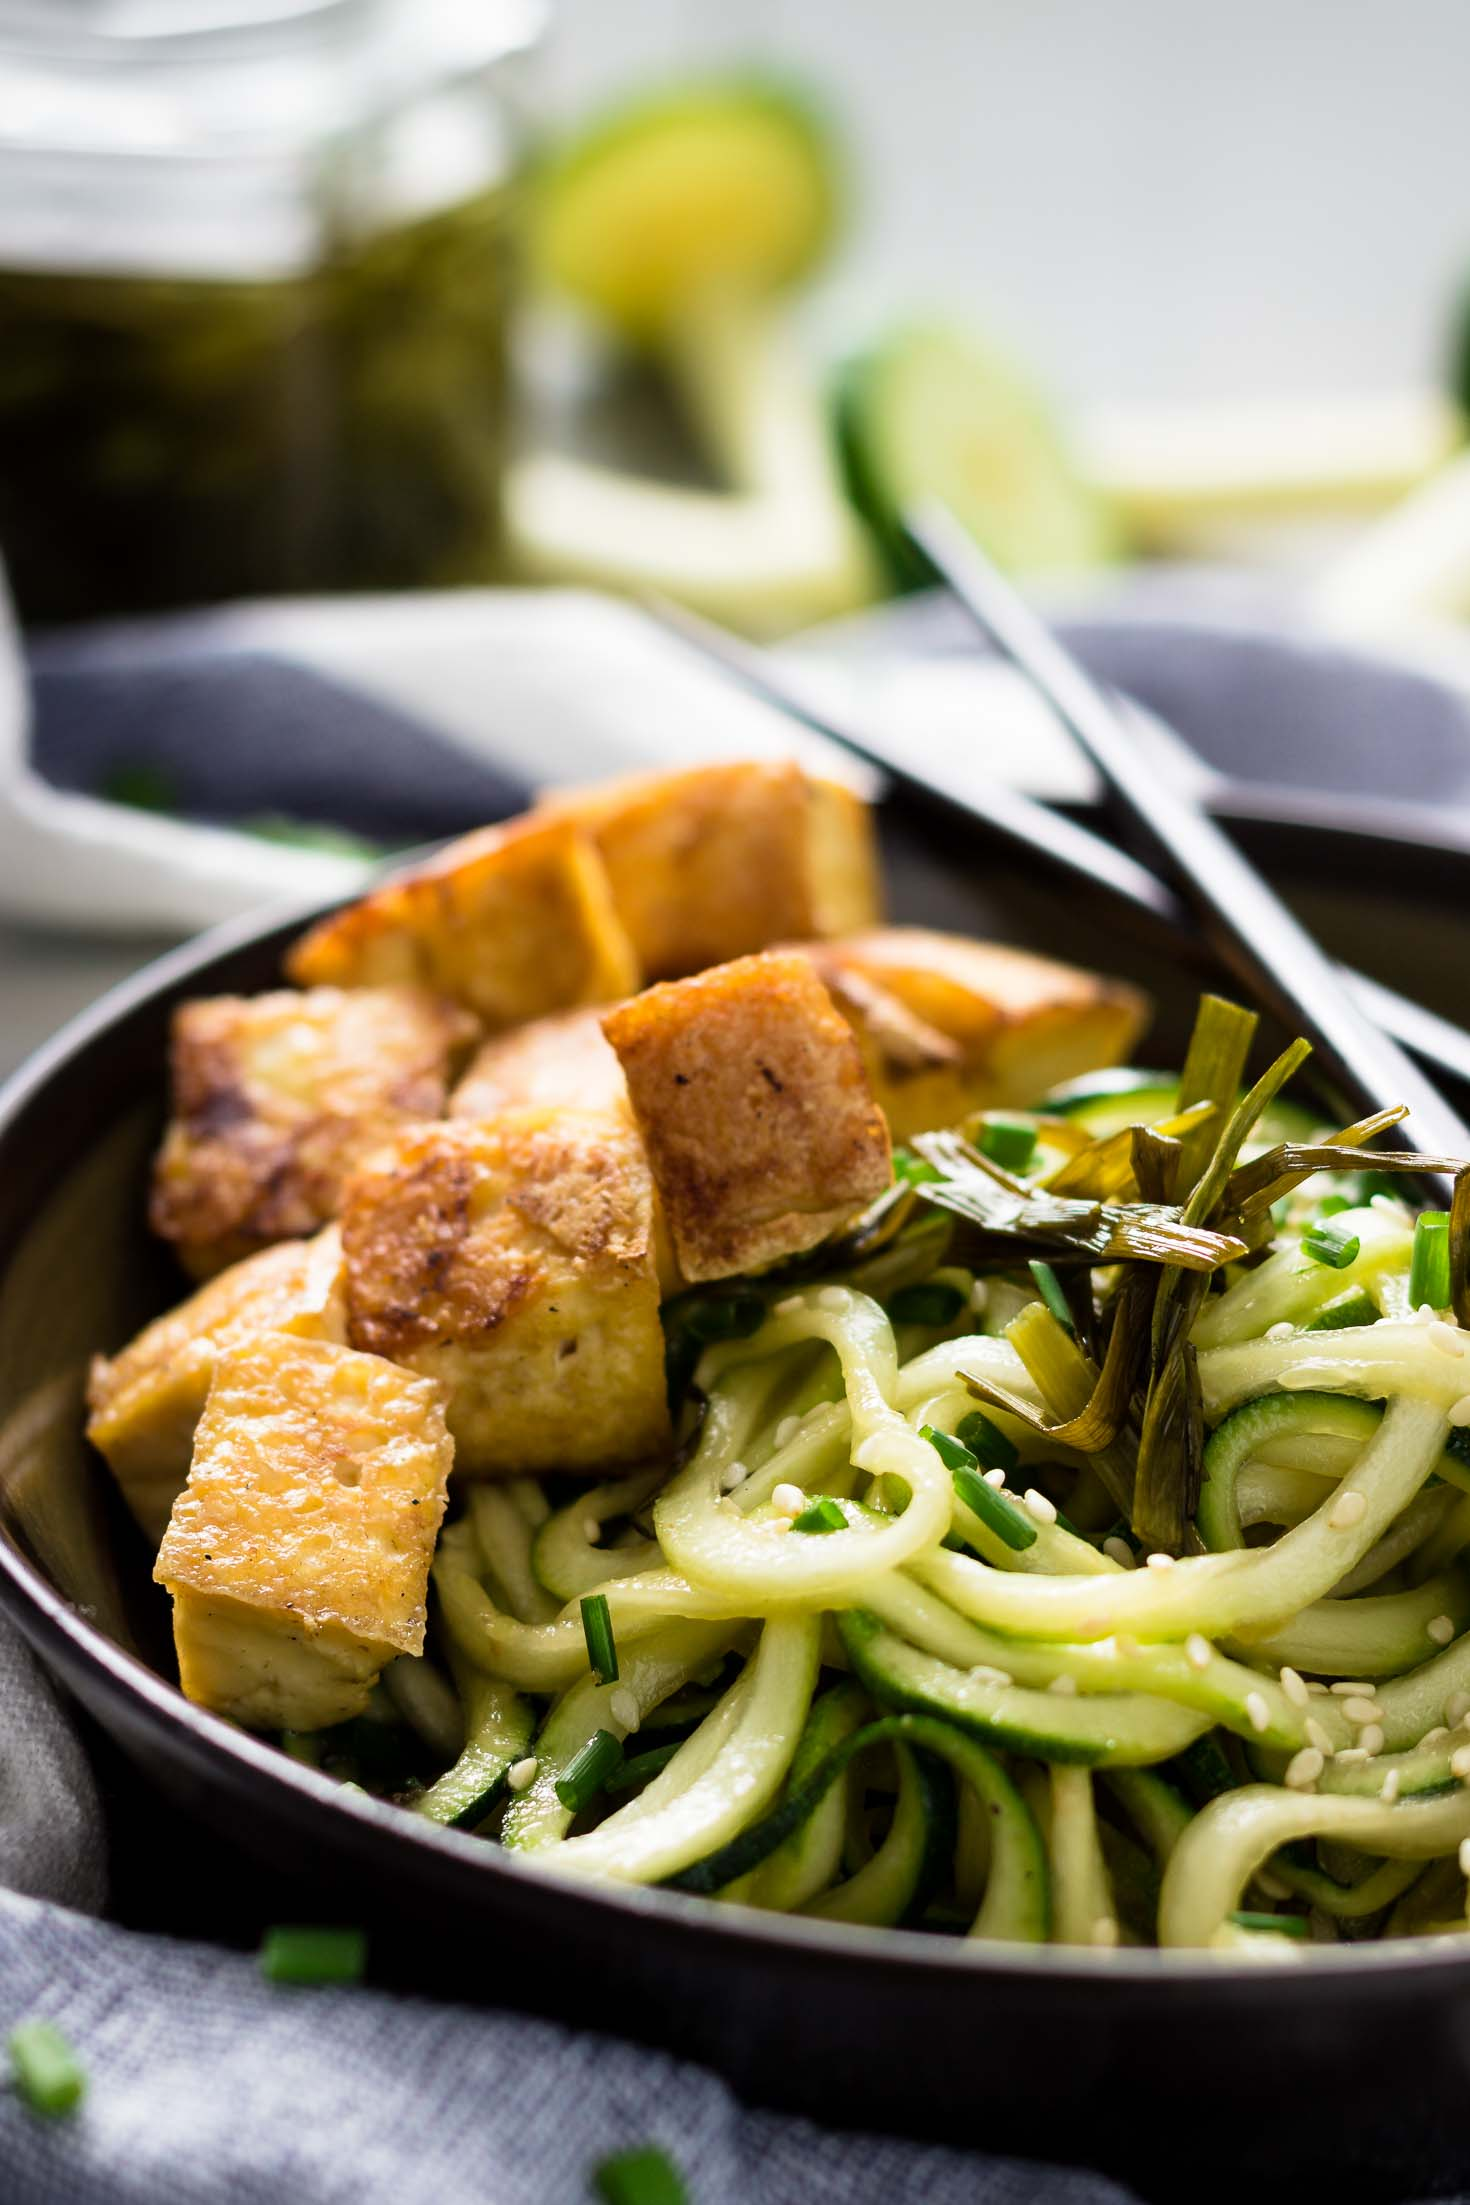 Chive Oil Zucchini Noodles with Roasted Tofu